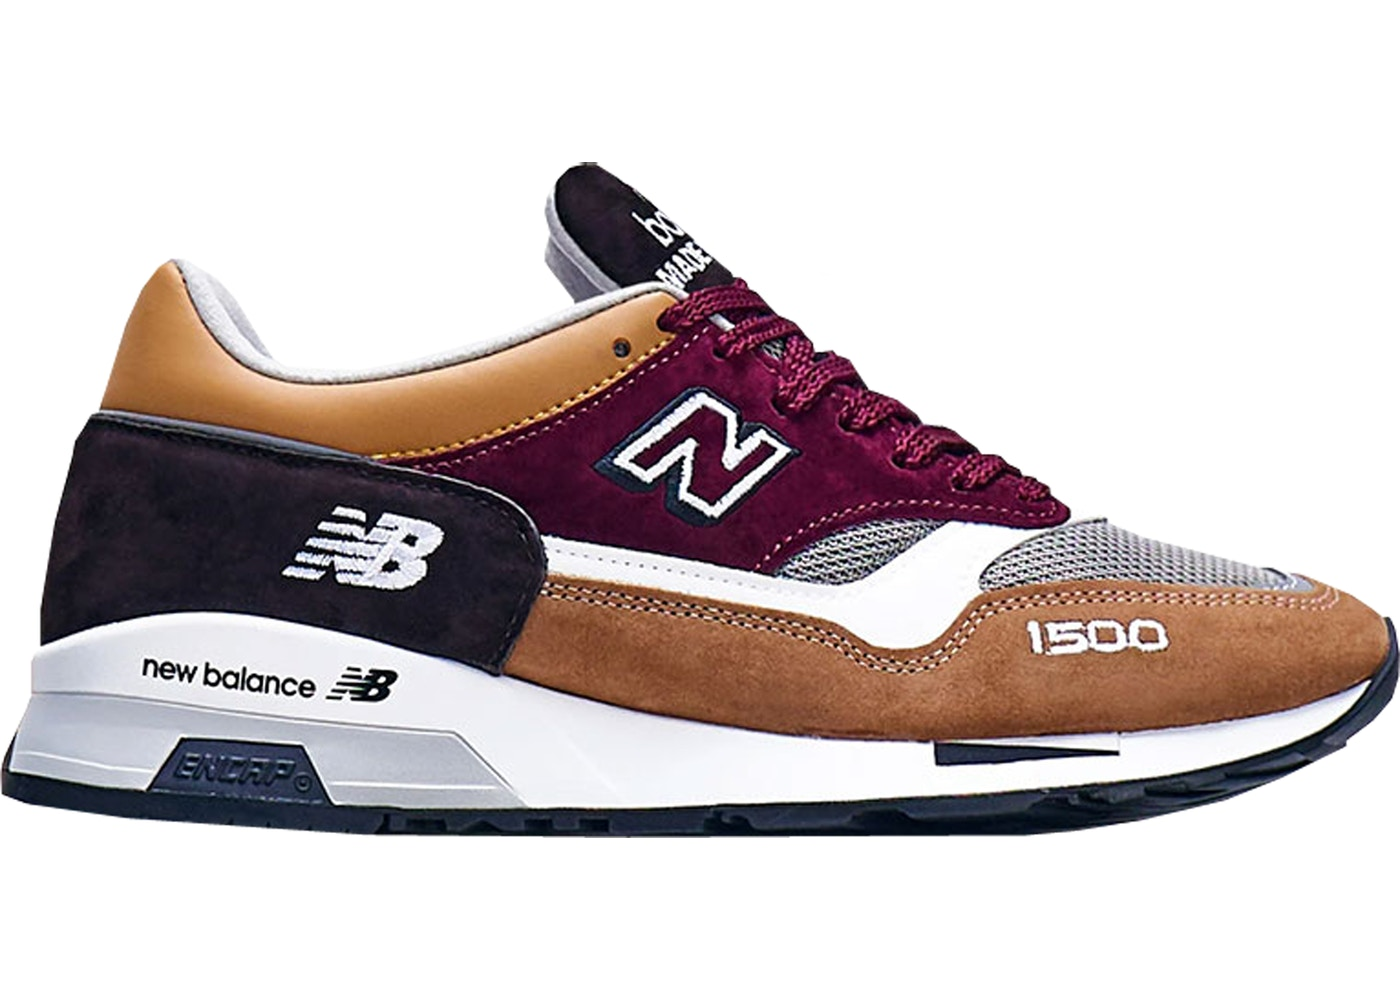 separation shoes 60284 d680c New Balance 1500 Sample Lab Beige - Sneakers